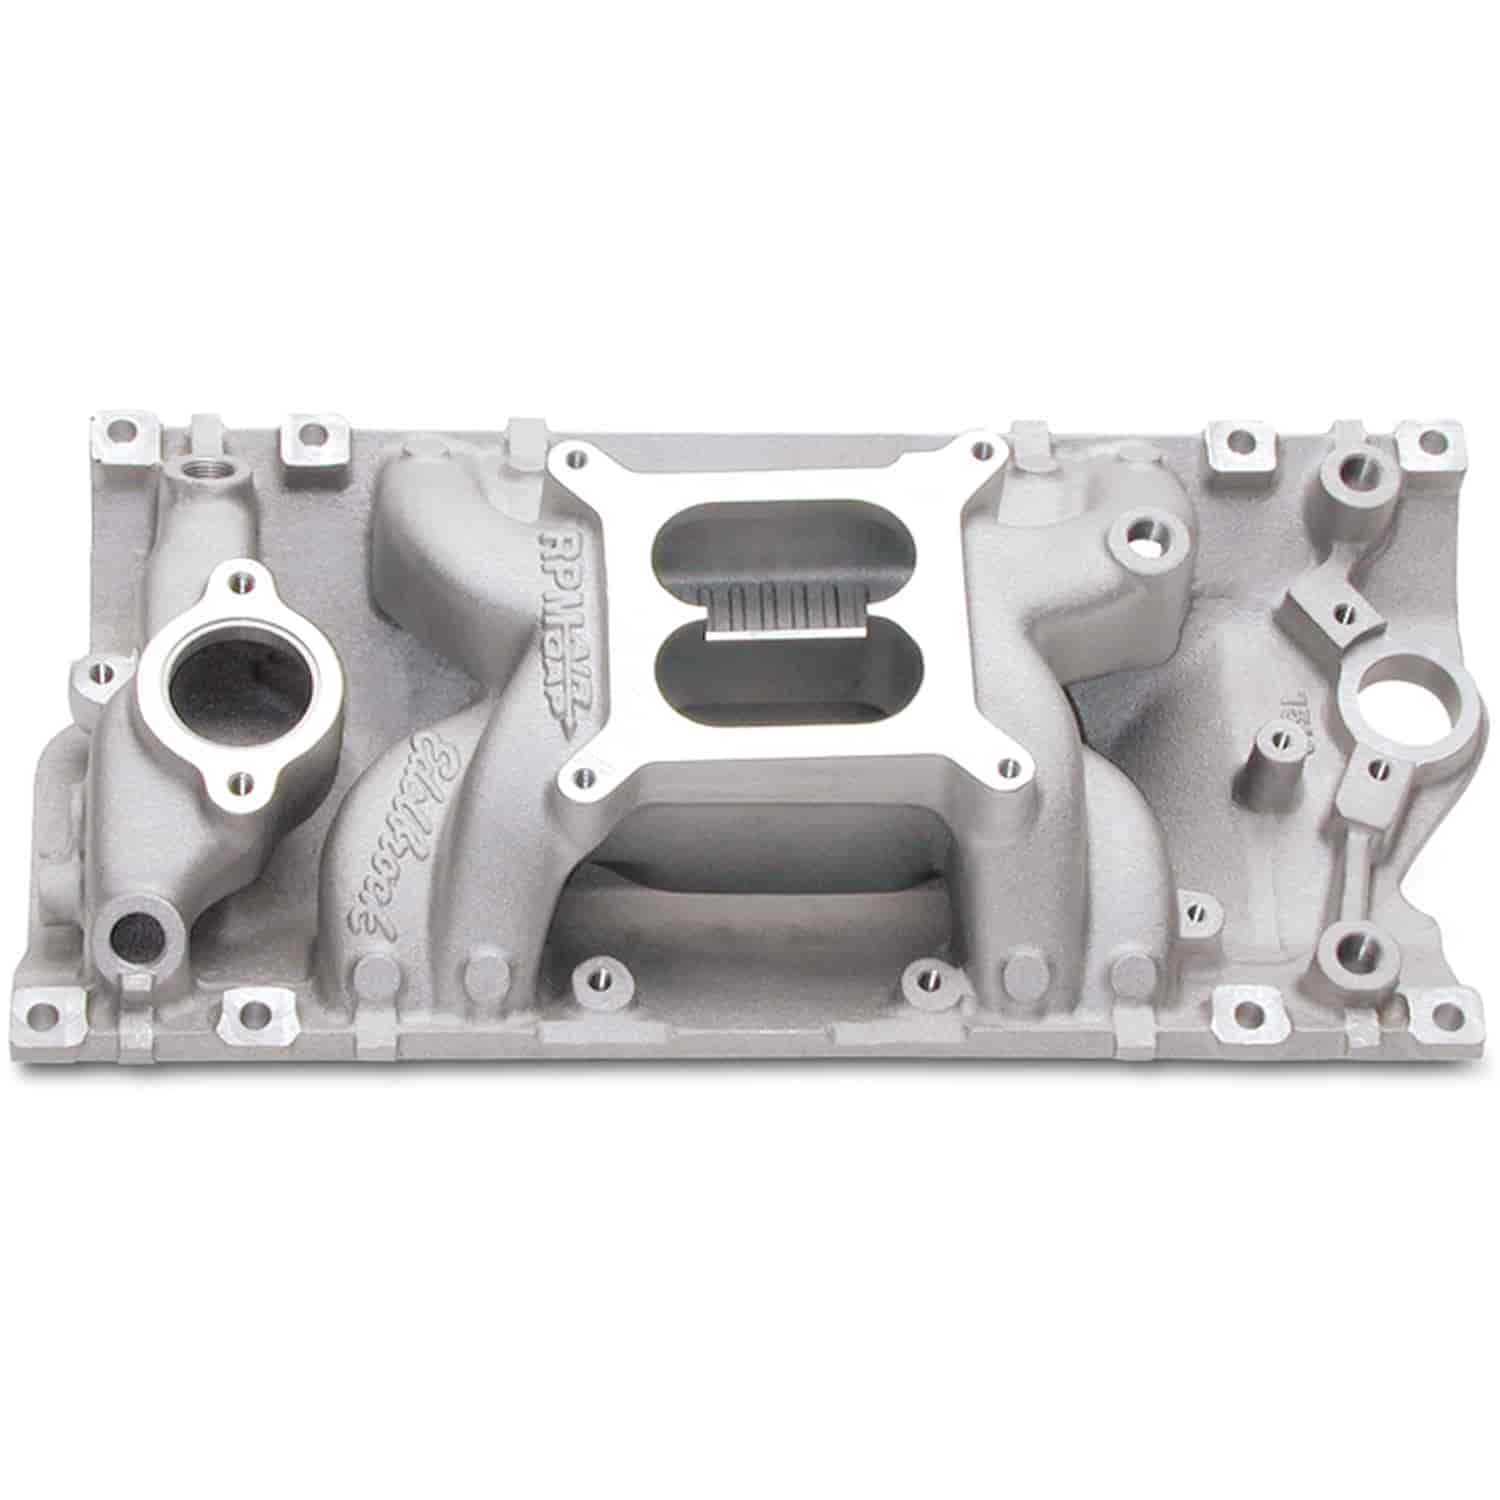 Edelbrock 7516: RPM Air-Gap Vortec Intake Manifold For SBC